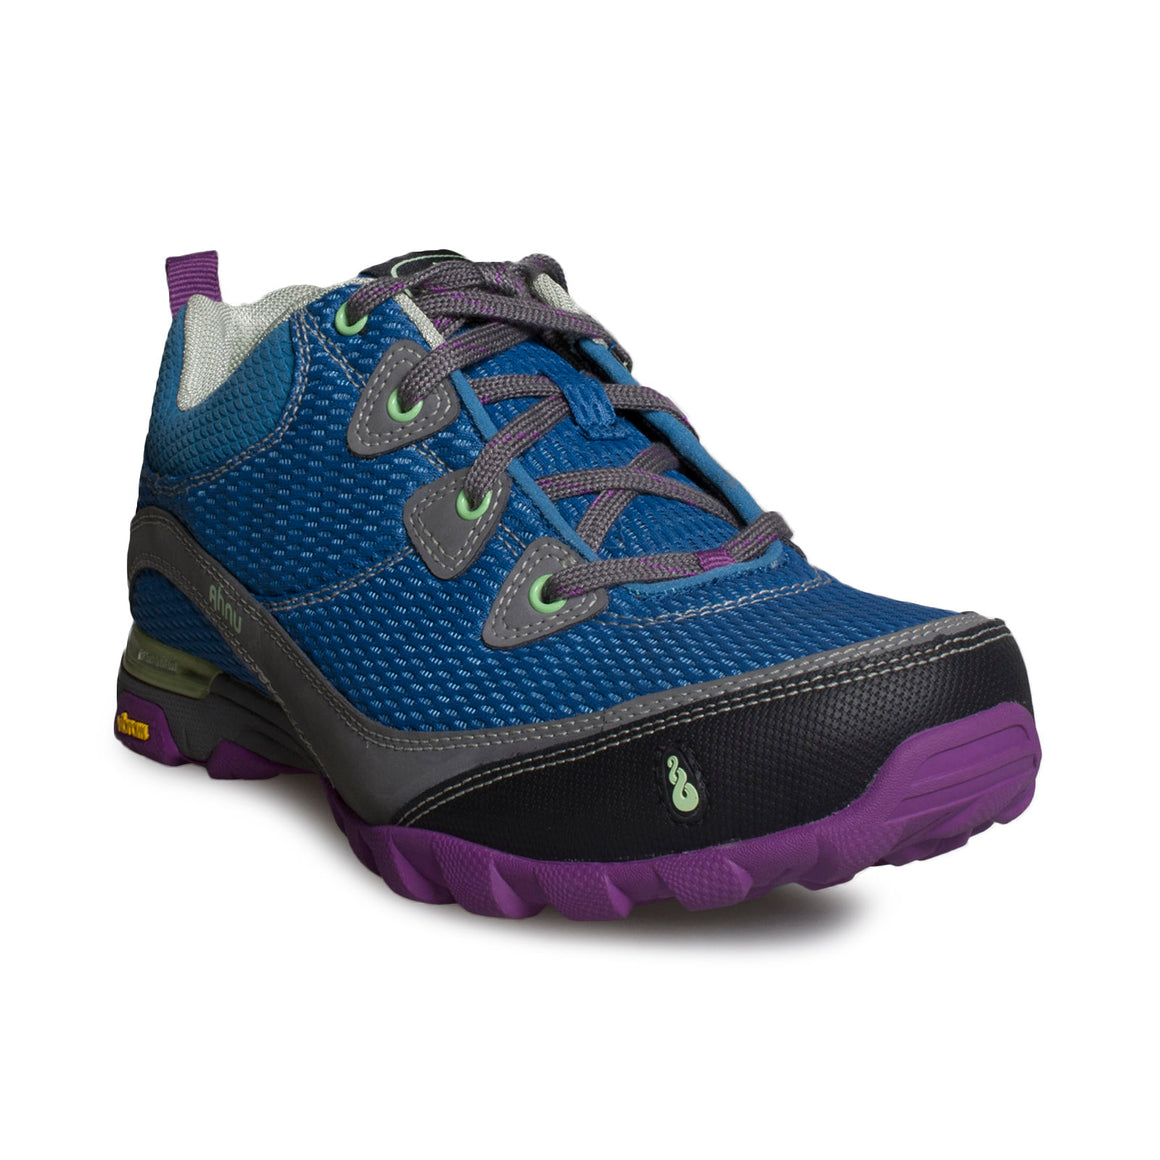 Ahnu Sugarpine Air Mesh Vallarta Blue Boots - Women's